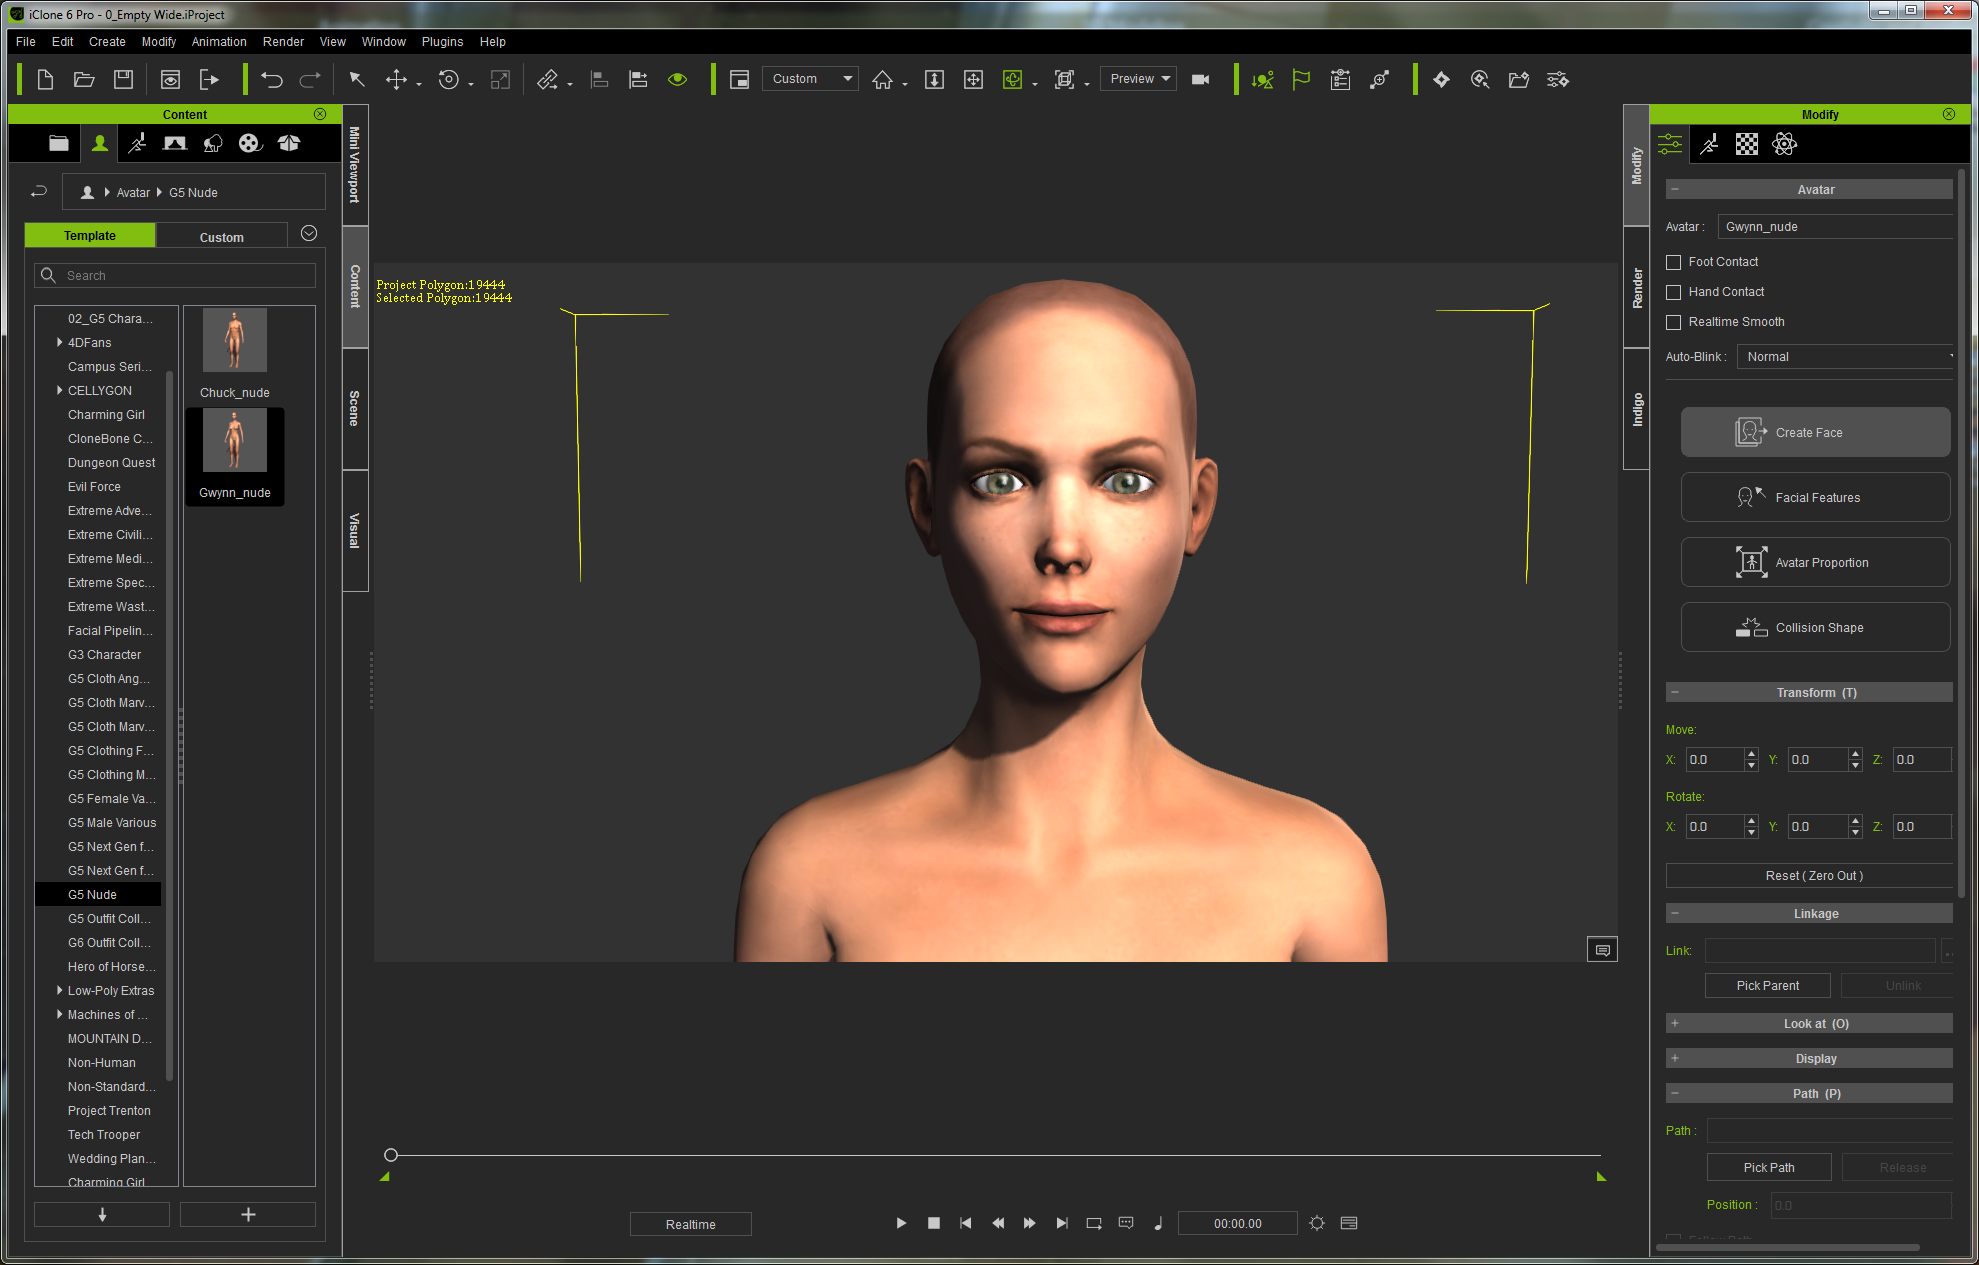 03_load_nude_model_select_create_face.png